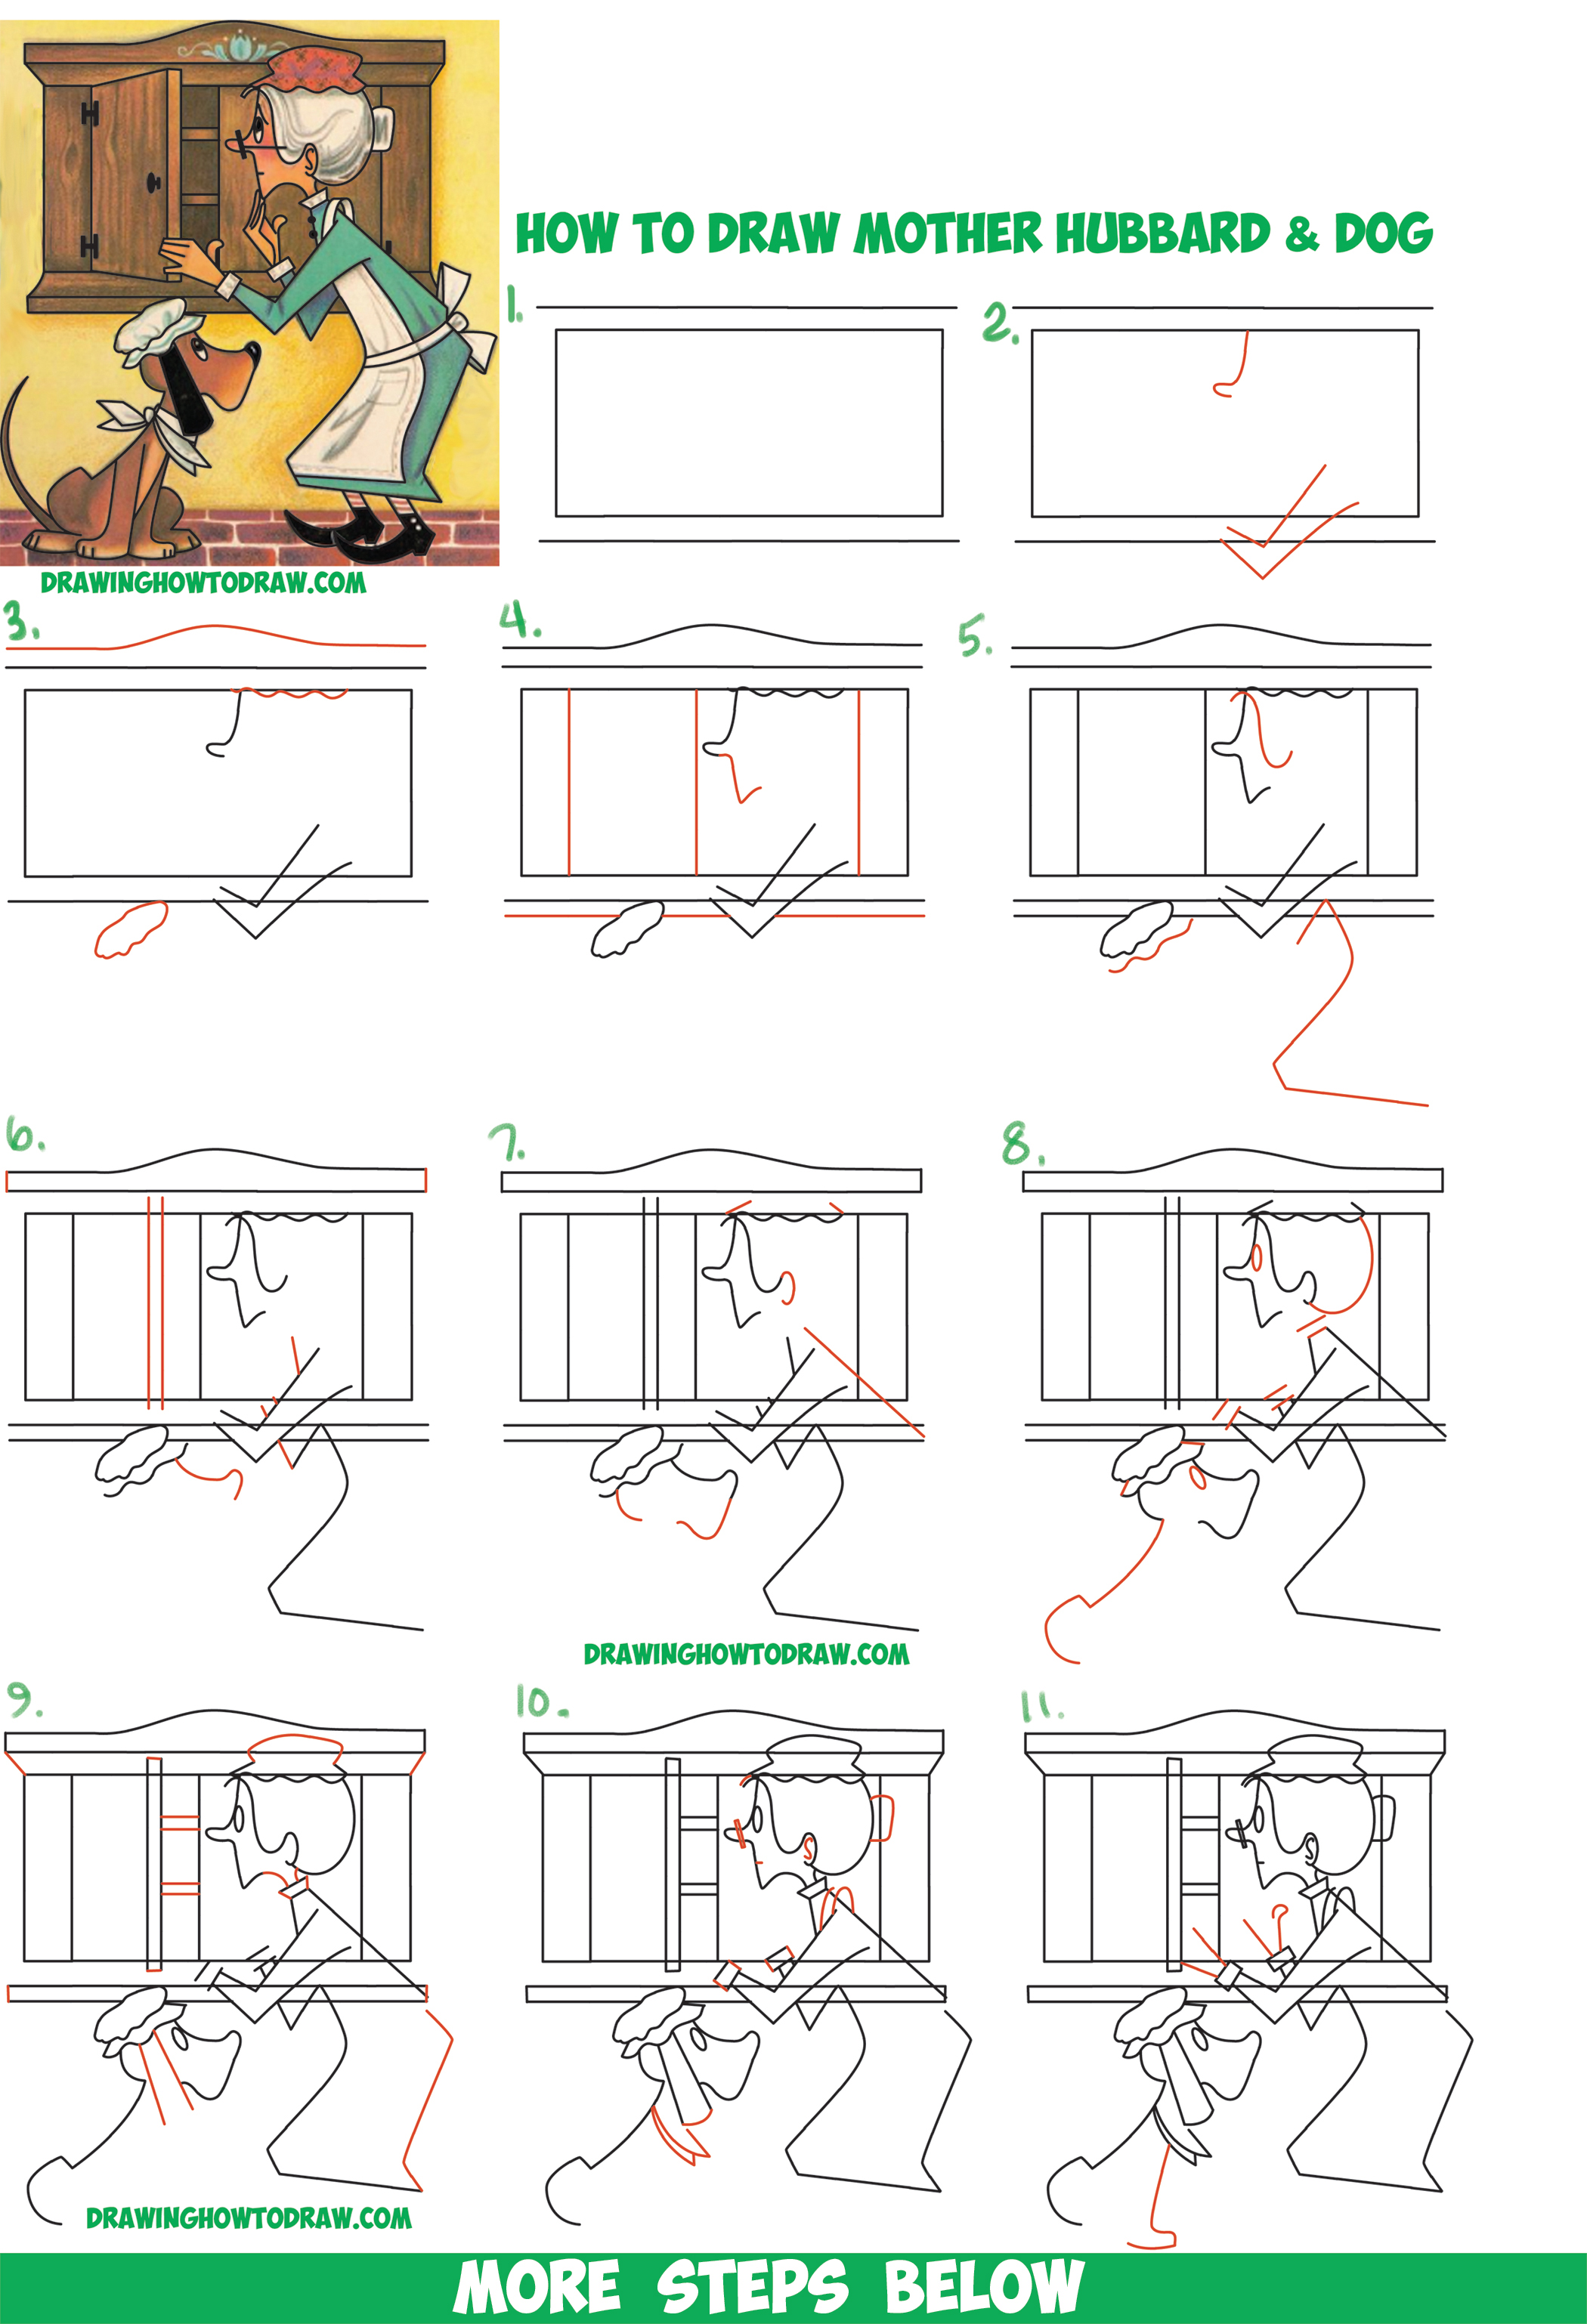 How to Draw Mother Hubbard, the Dog, & the Cupboard Easy Step by Step Drawing Tutorial for Kids